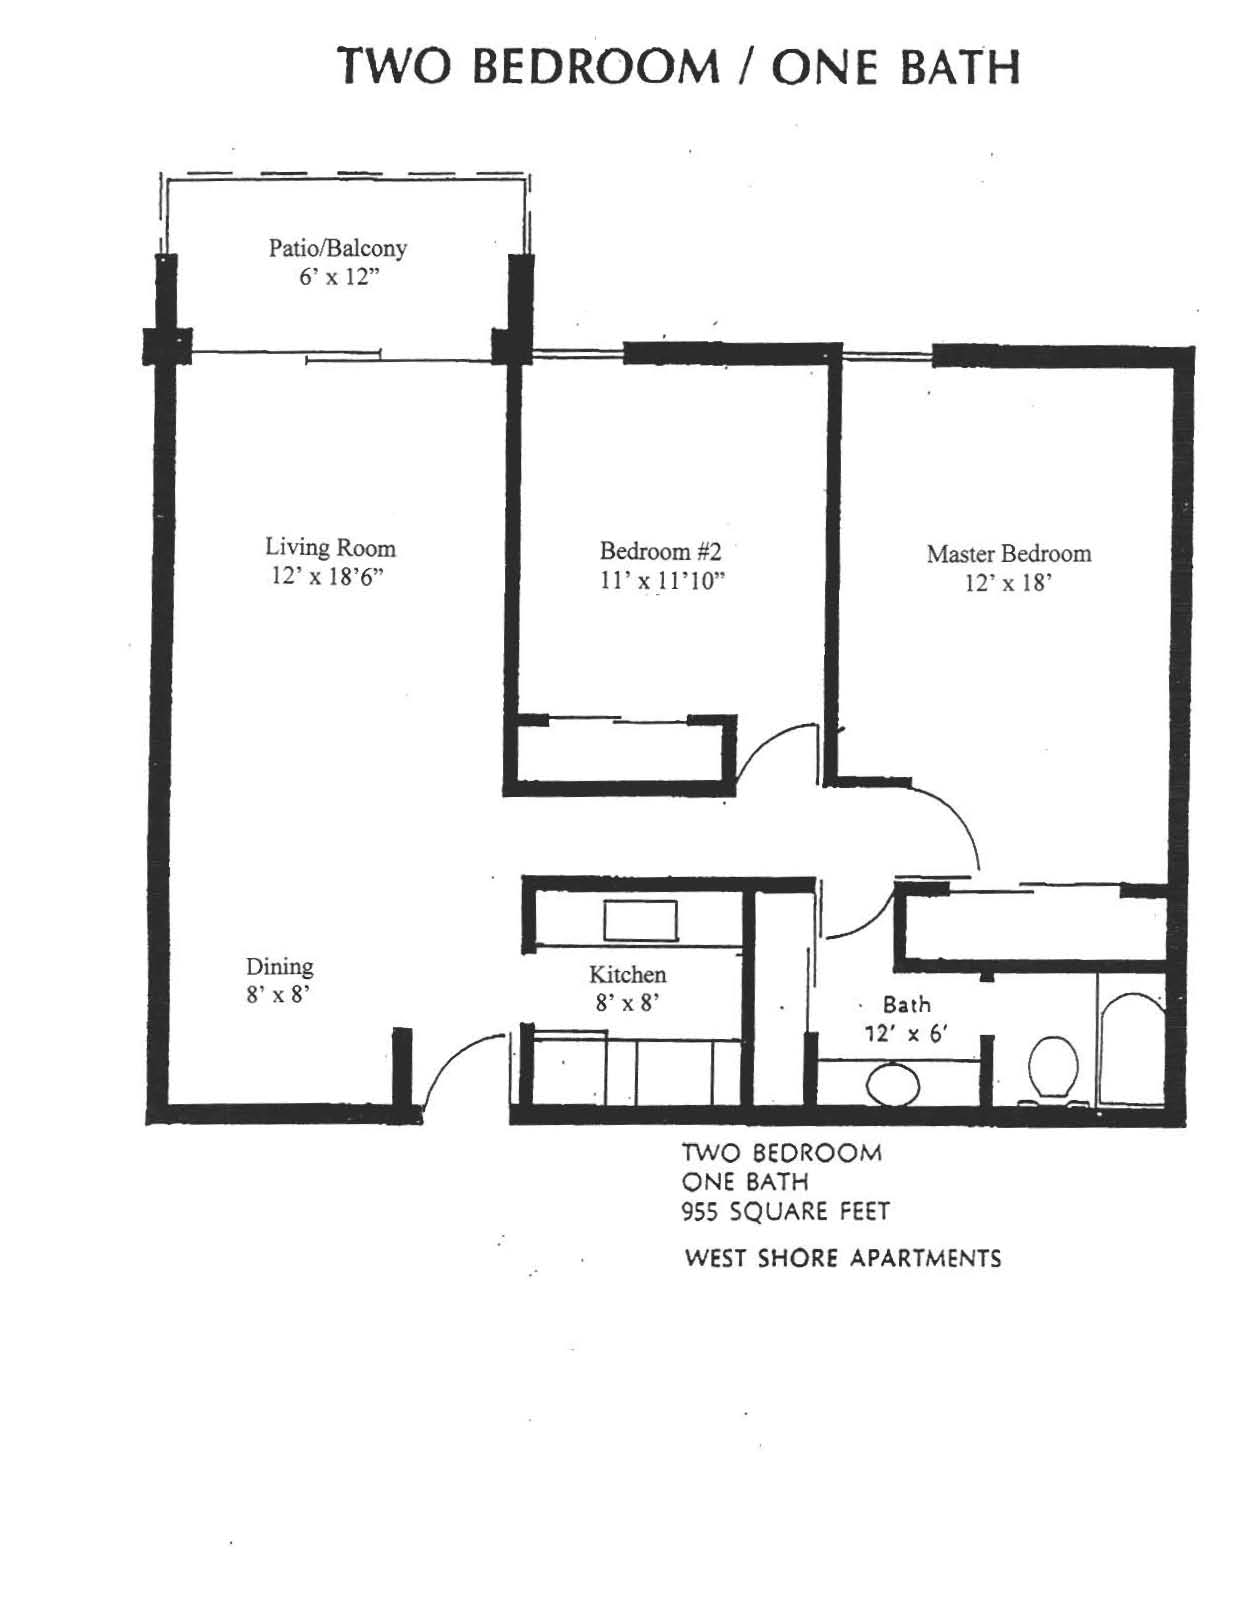 WestShore Apartments/Embassy Apartments - Floorplan - Westshore C2.1